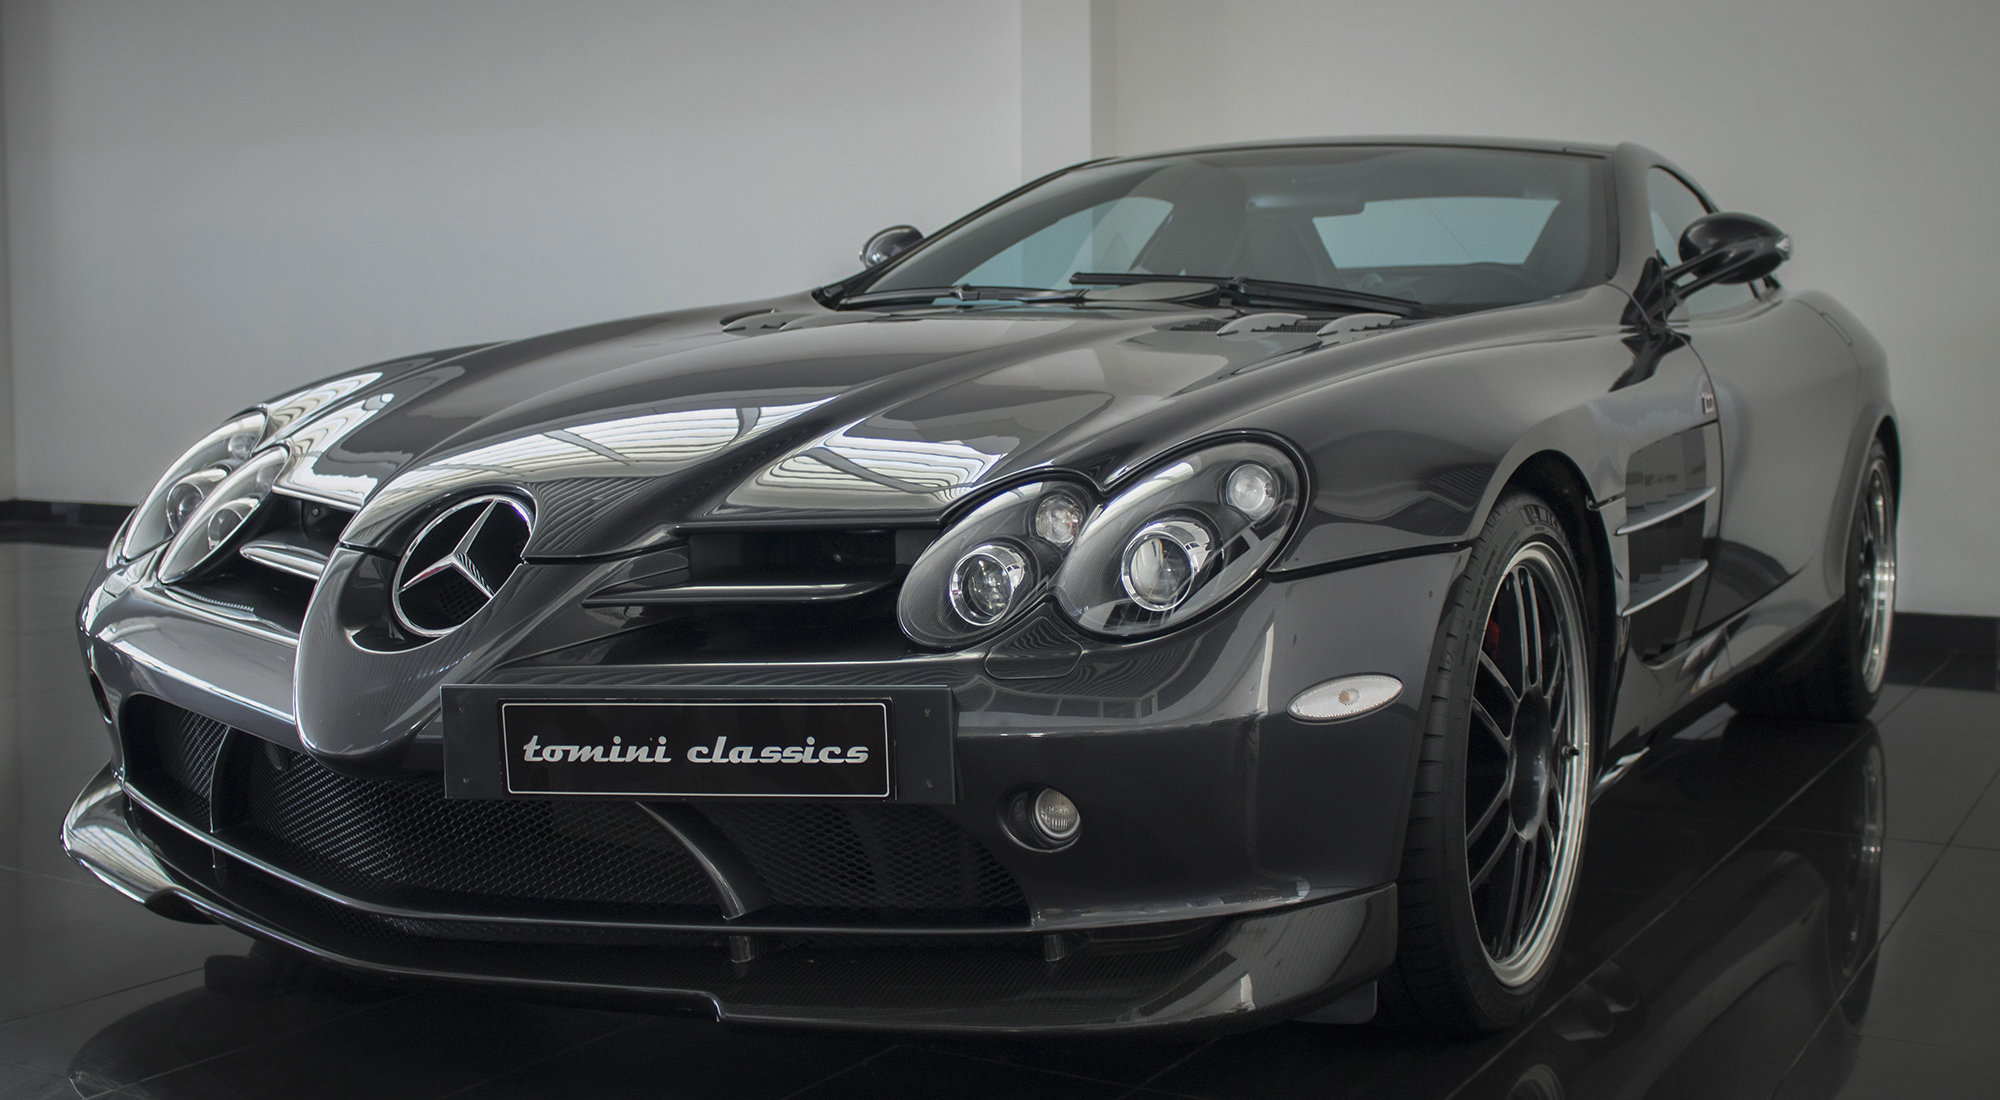 Mercedes-Benz SLR McLaren 722 (2007) For Sale (picture 4 of 6)